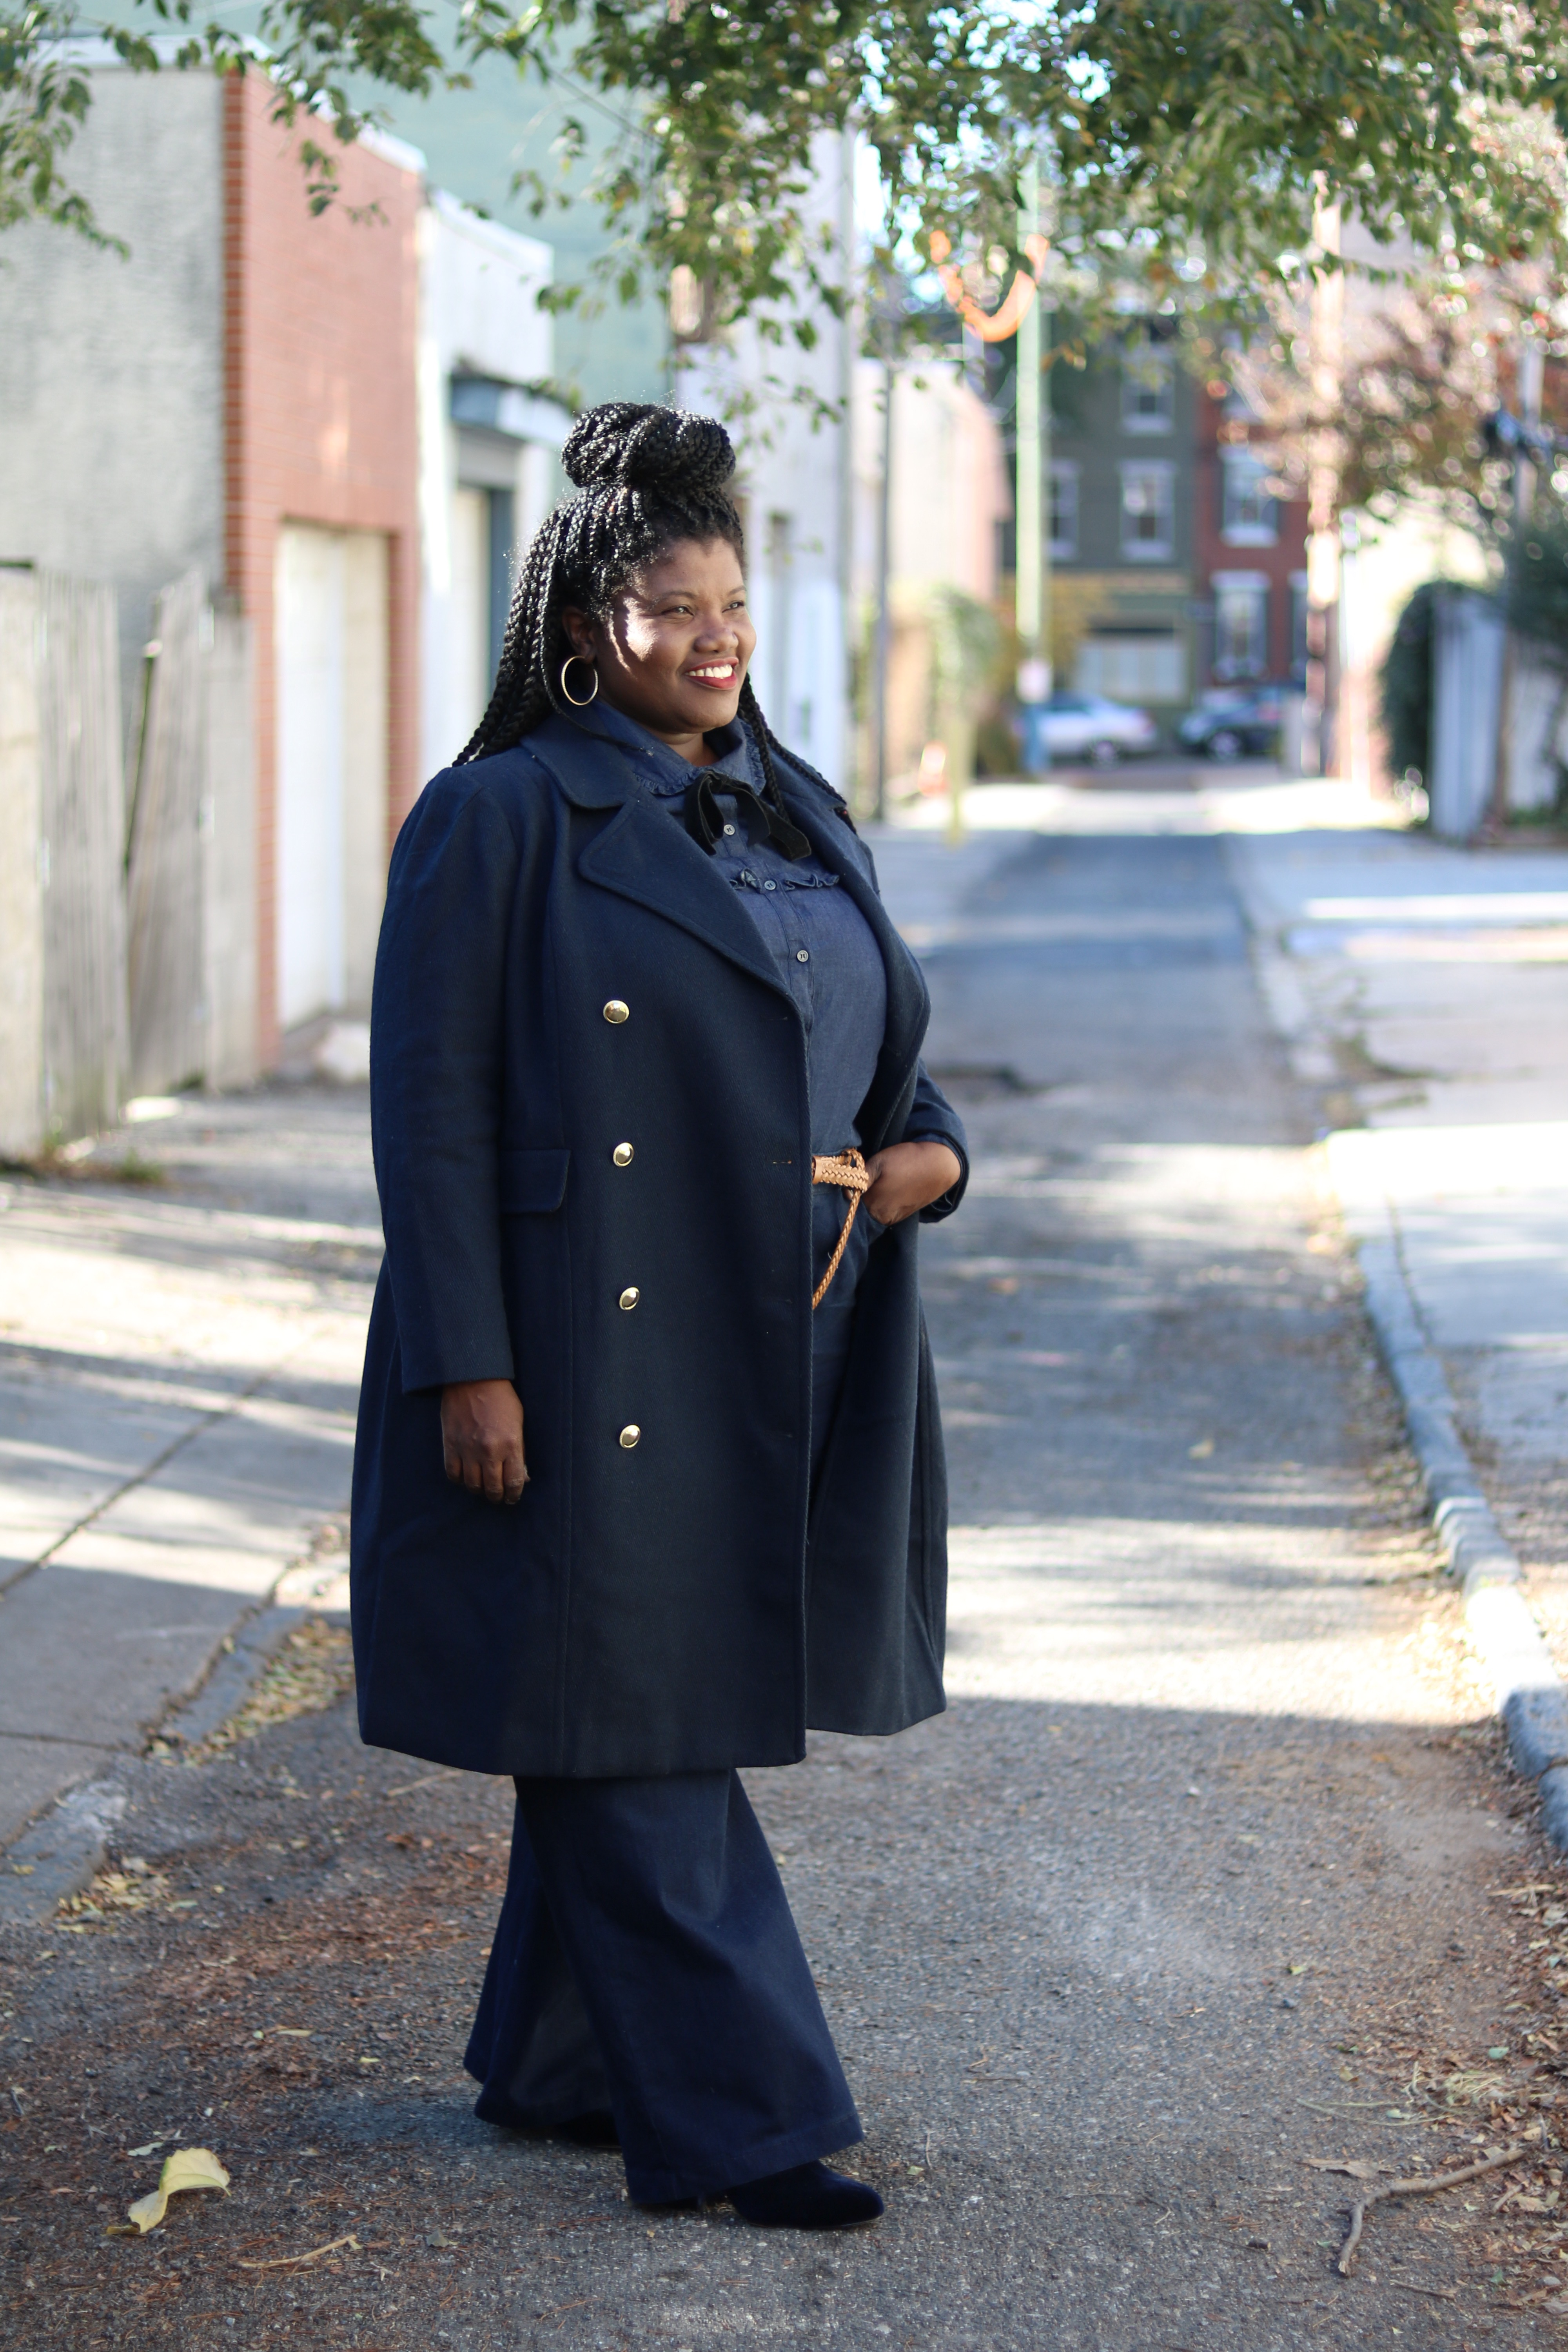 denim on denim outfit, eloquii, plus size coats, plus size jeans, plus size denim shirt, jeans, plus size denim, booties, velvet booties, tie neck shirt, plus size coats, plus size blog, plus size blogger, plus size blogs, curvy blogs, curvy bloggers, fashion blogs, personal style blog for women